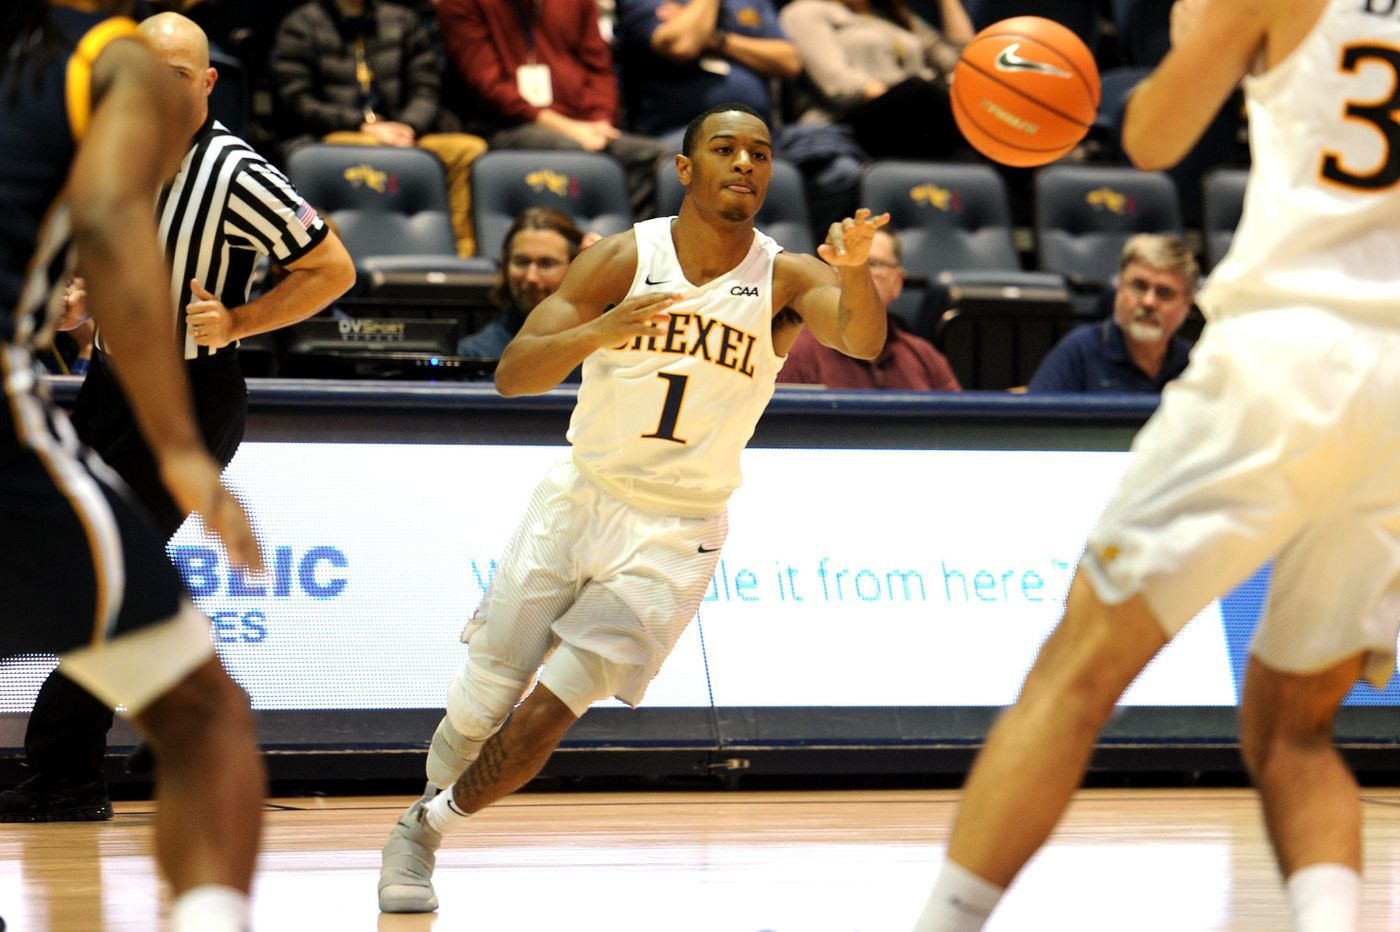 Drexel picked ninth in CAA men's basketball poll